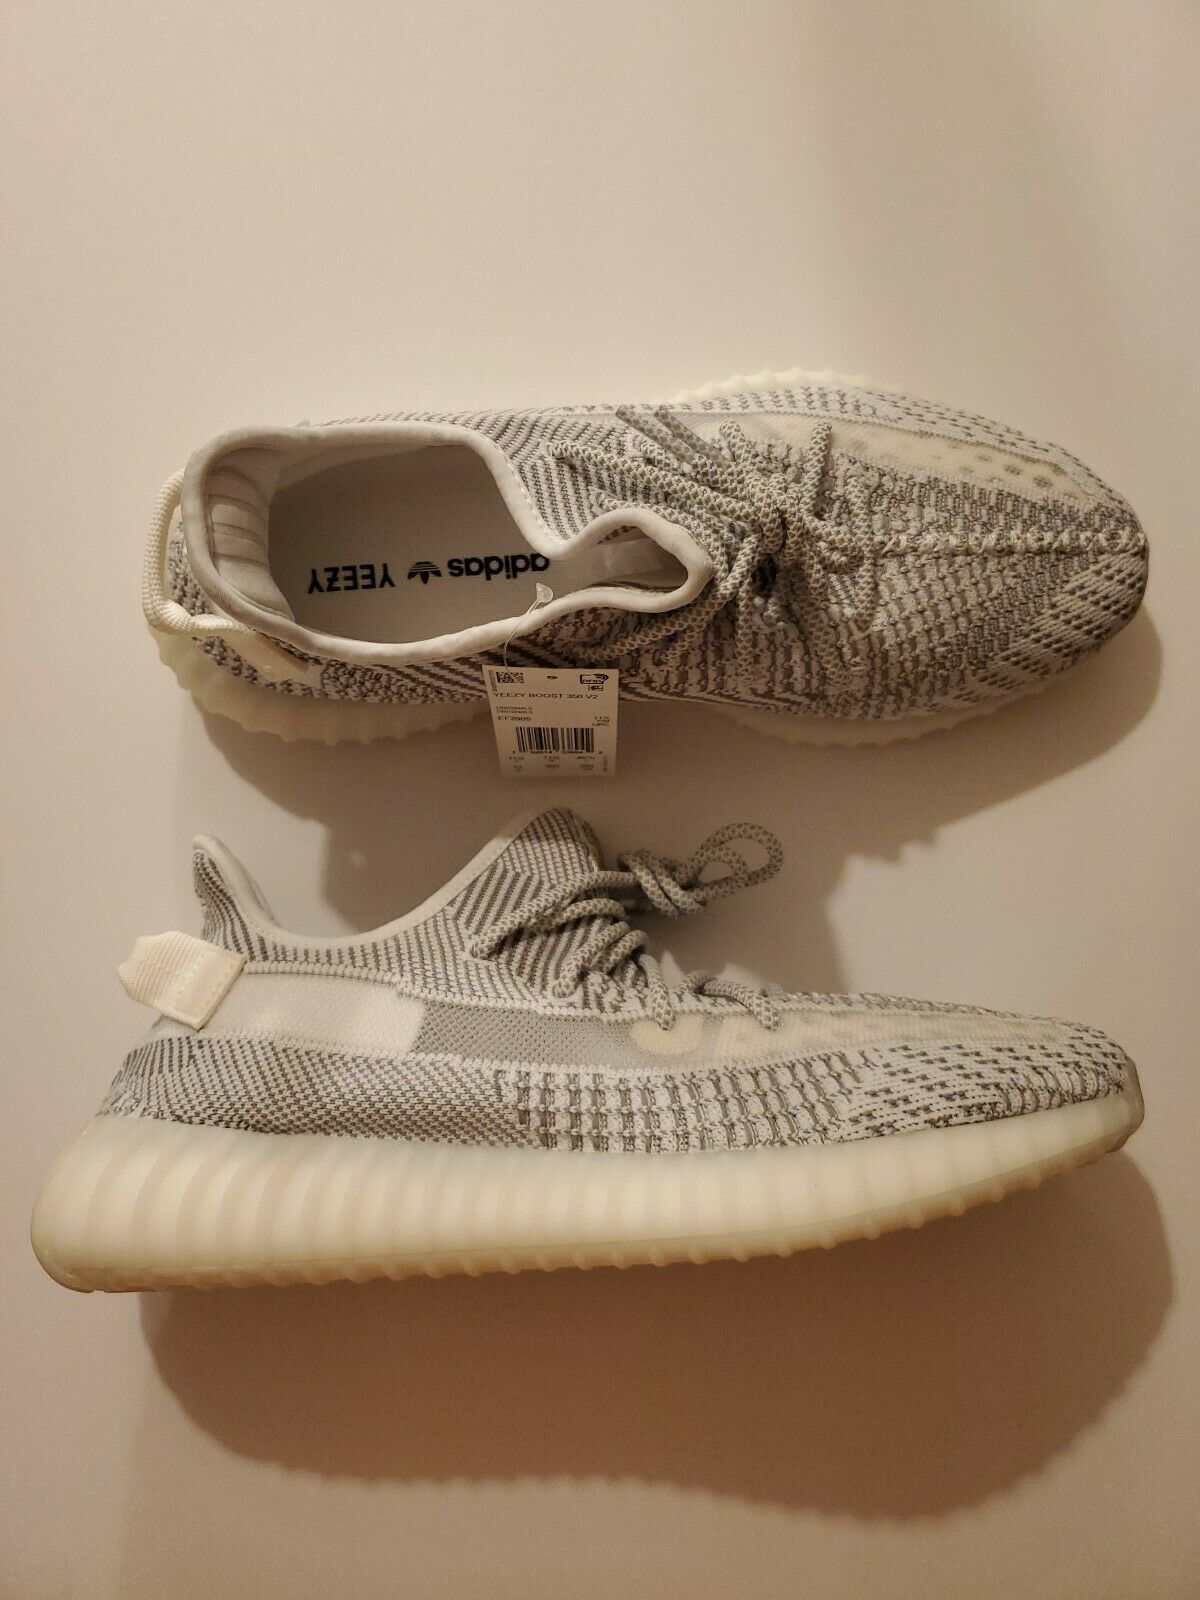 Adidas Yeezy Boost 350 V2 Static EF2905 size 12 non reflective 100% authentic image 2